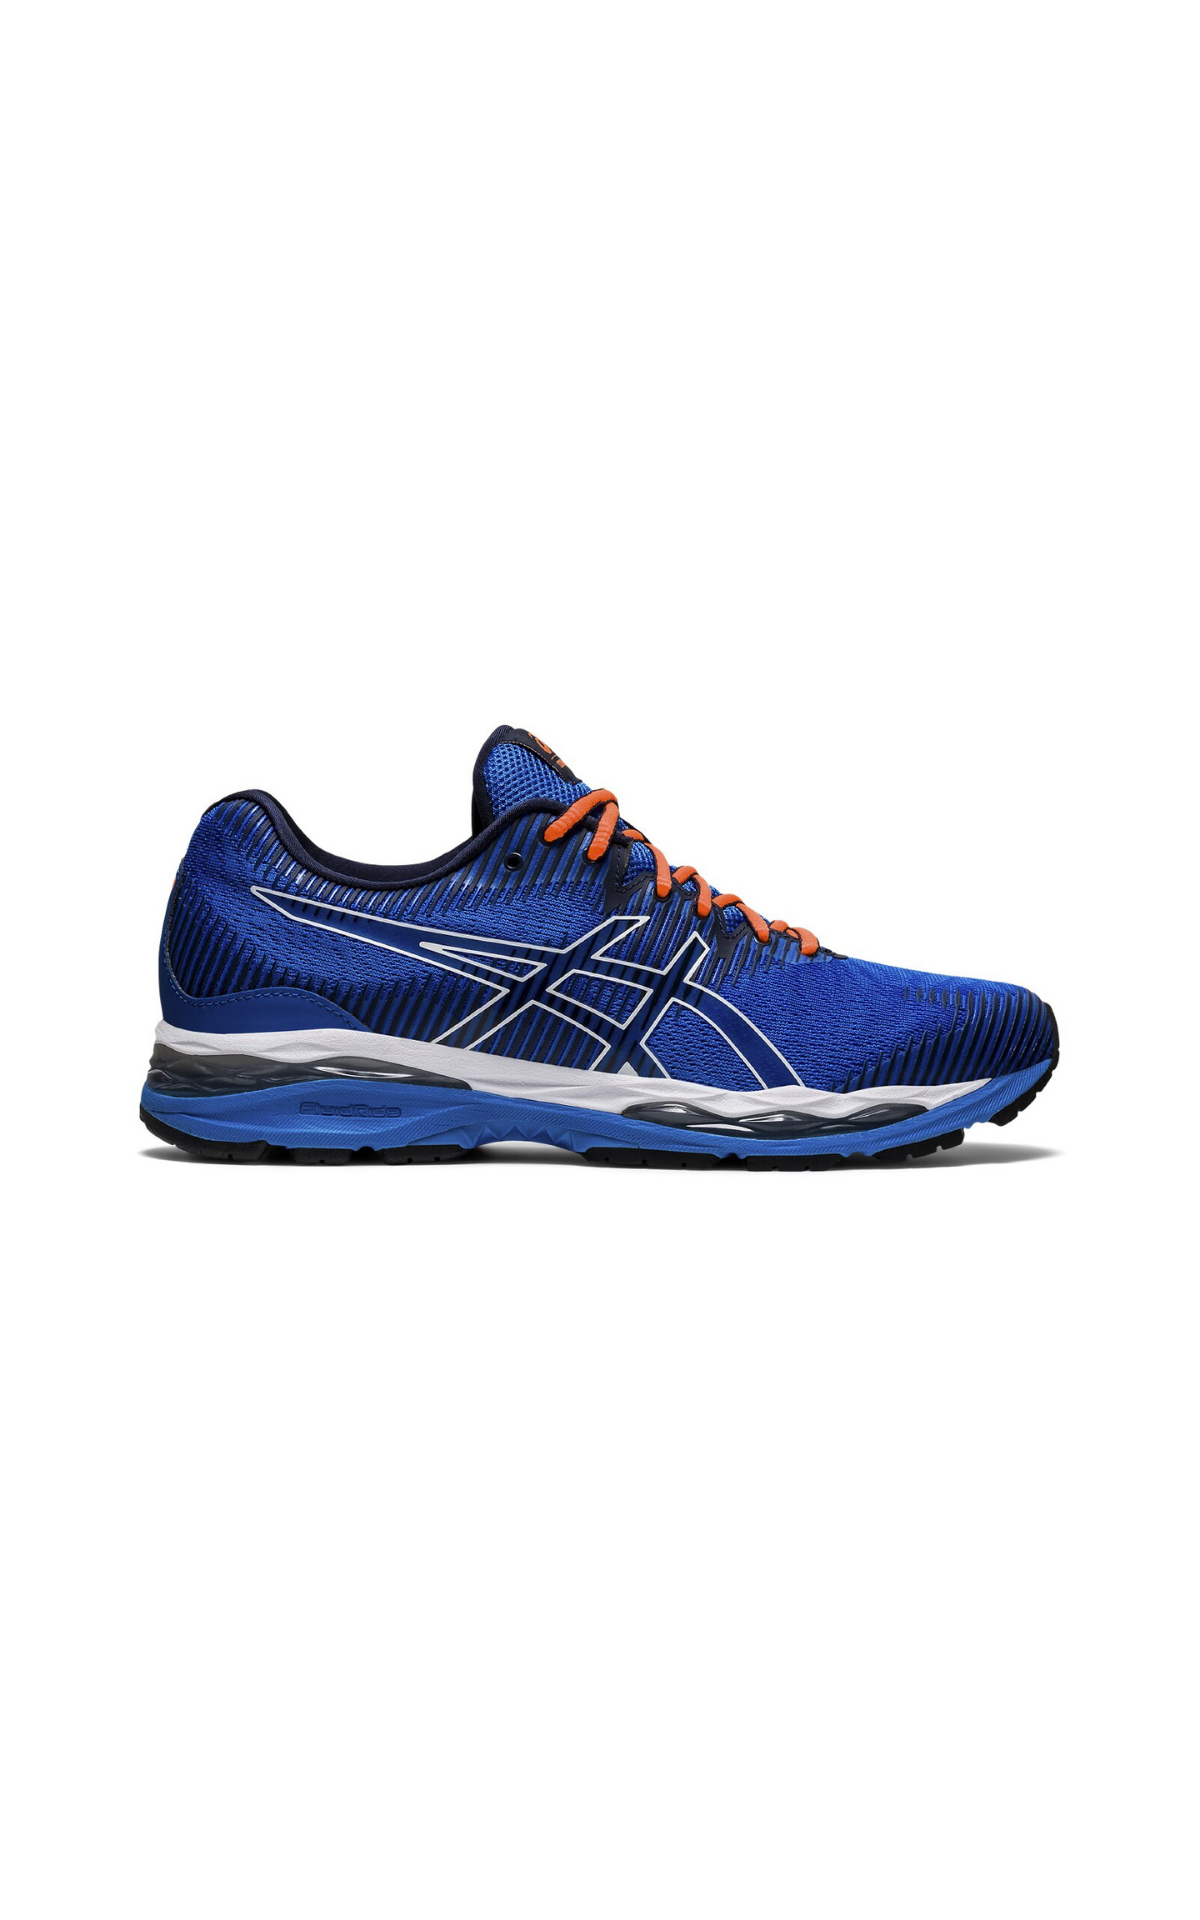 Asics ziruss 2 at the Bicester Village Shopping Collection